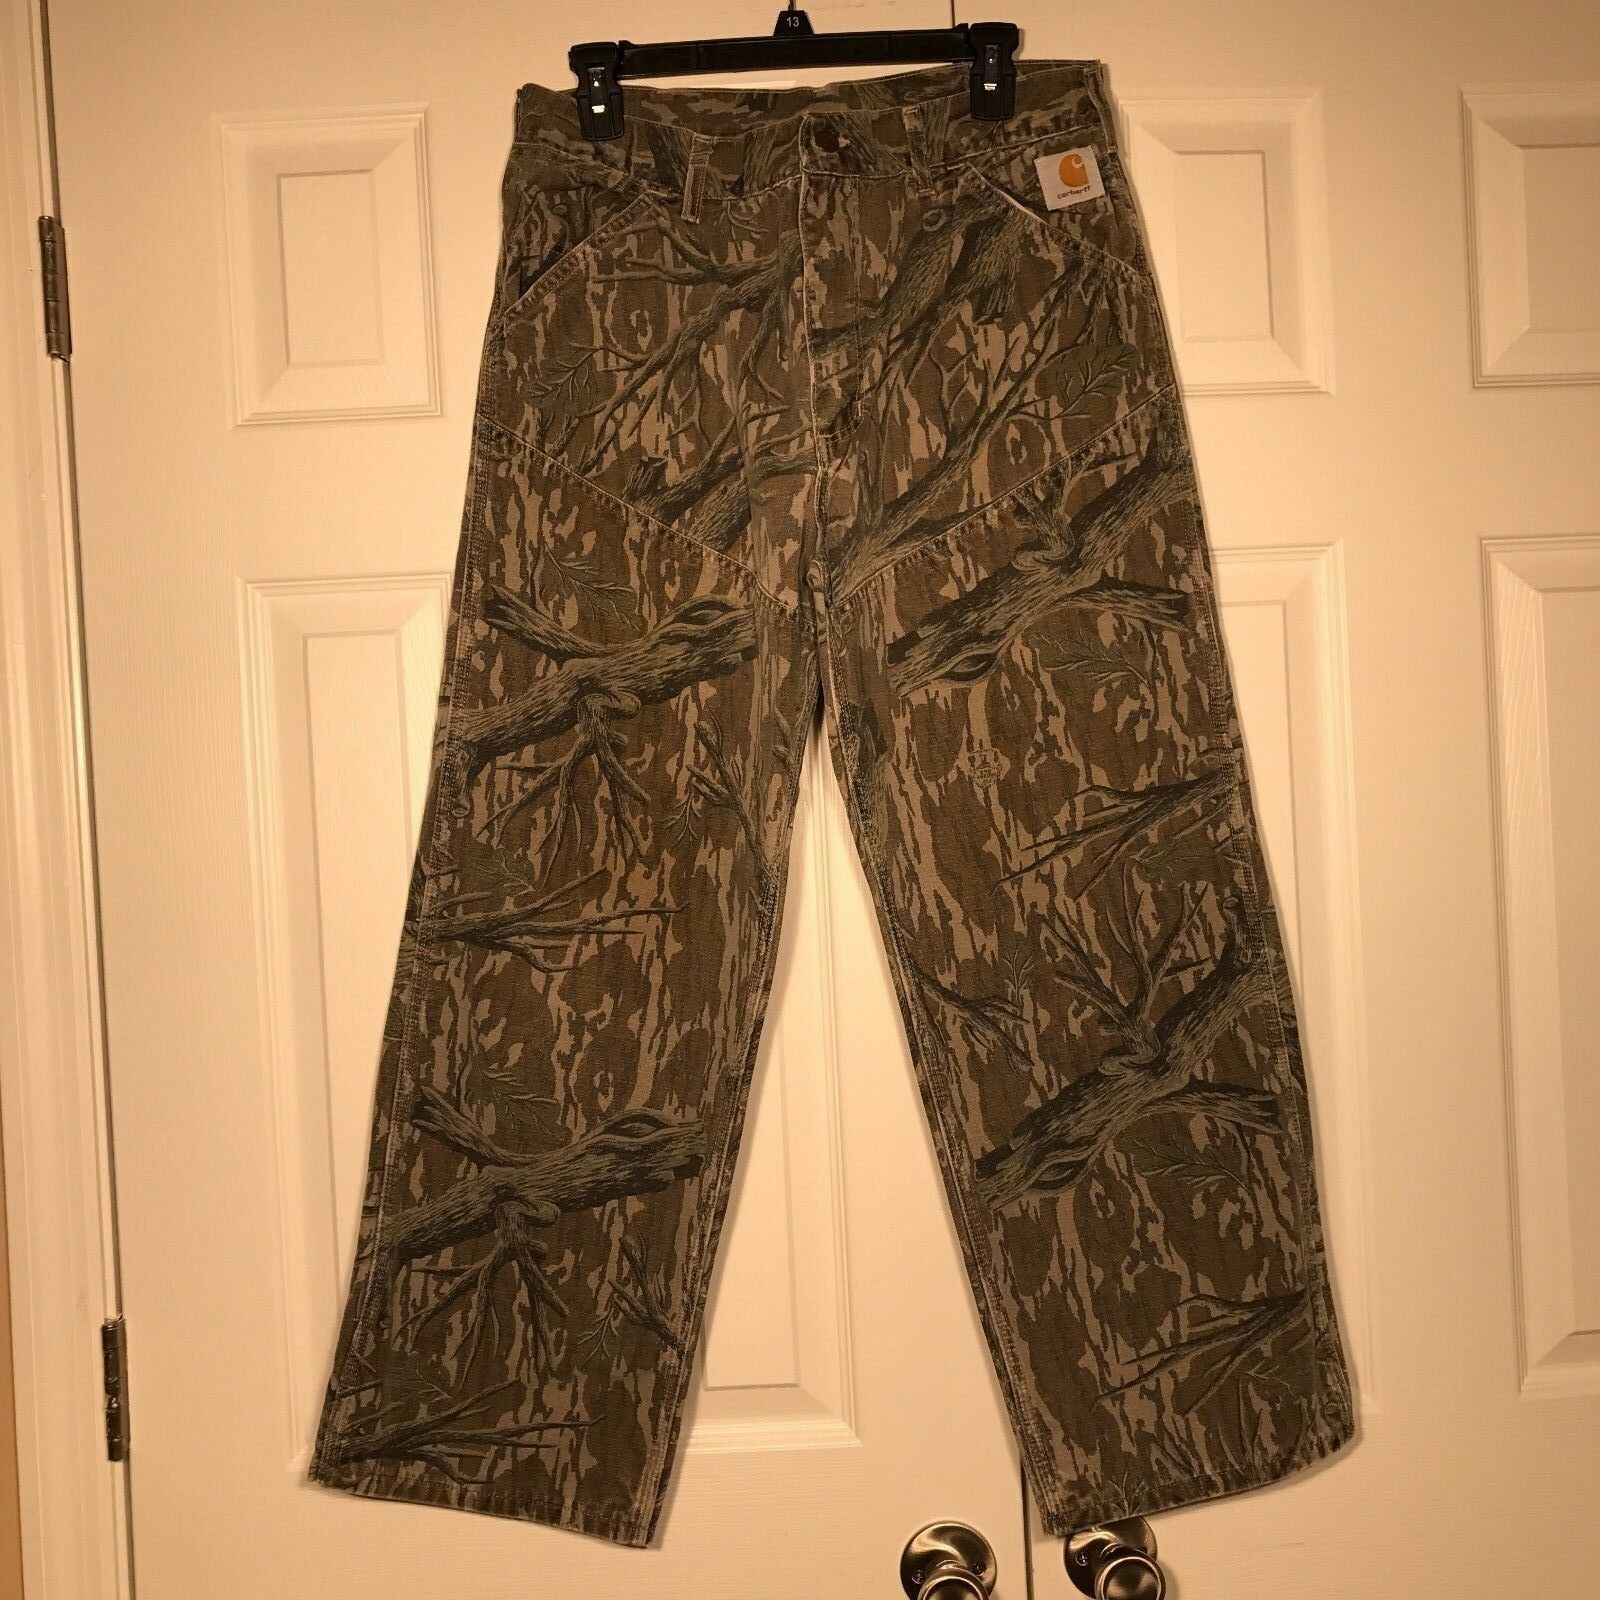 VINTAGE CARHARTT  Mossy Oak Tree-Stand Camo Hunting Pants Mens DOUBLE KNEE 32x27  latest styles